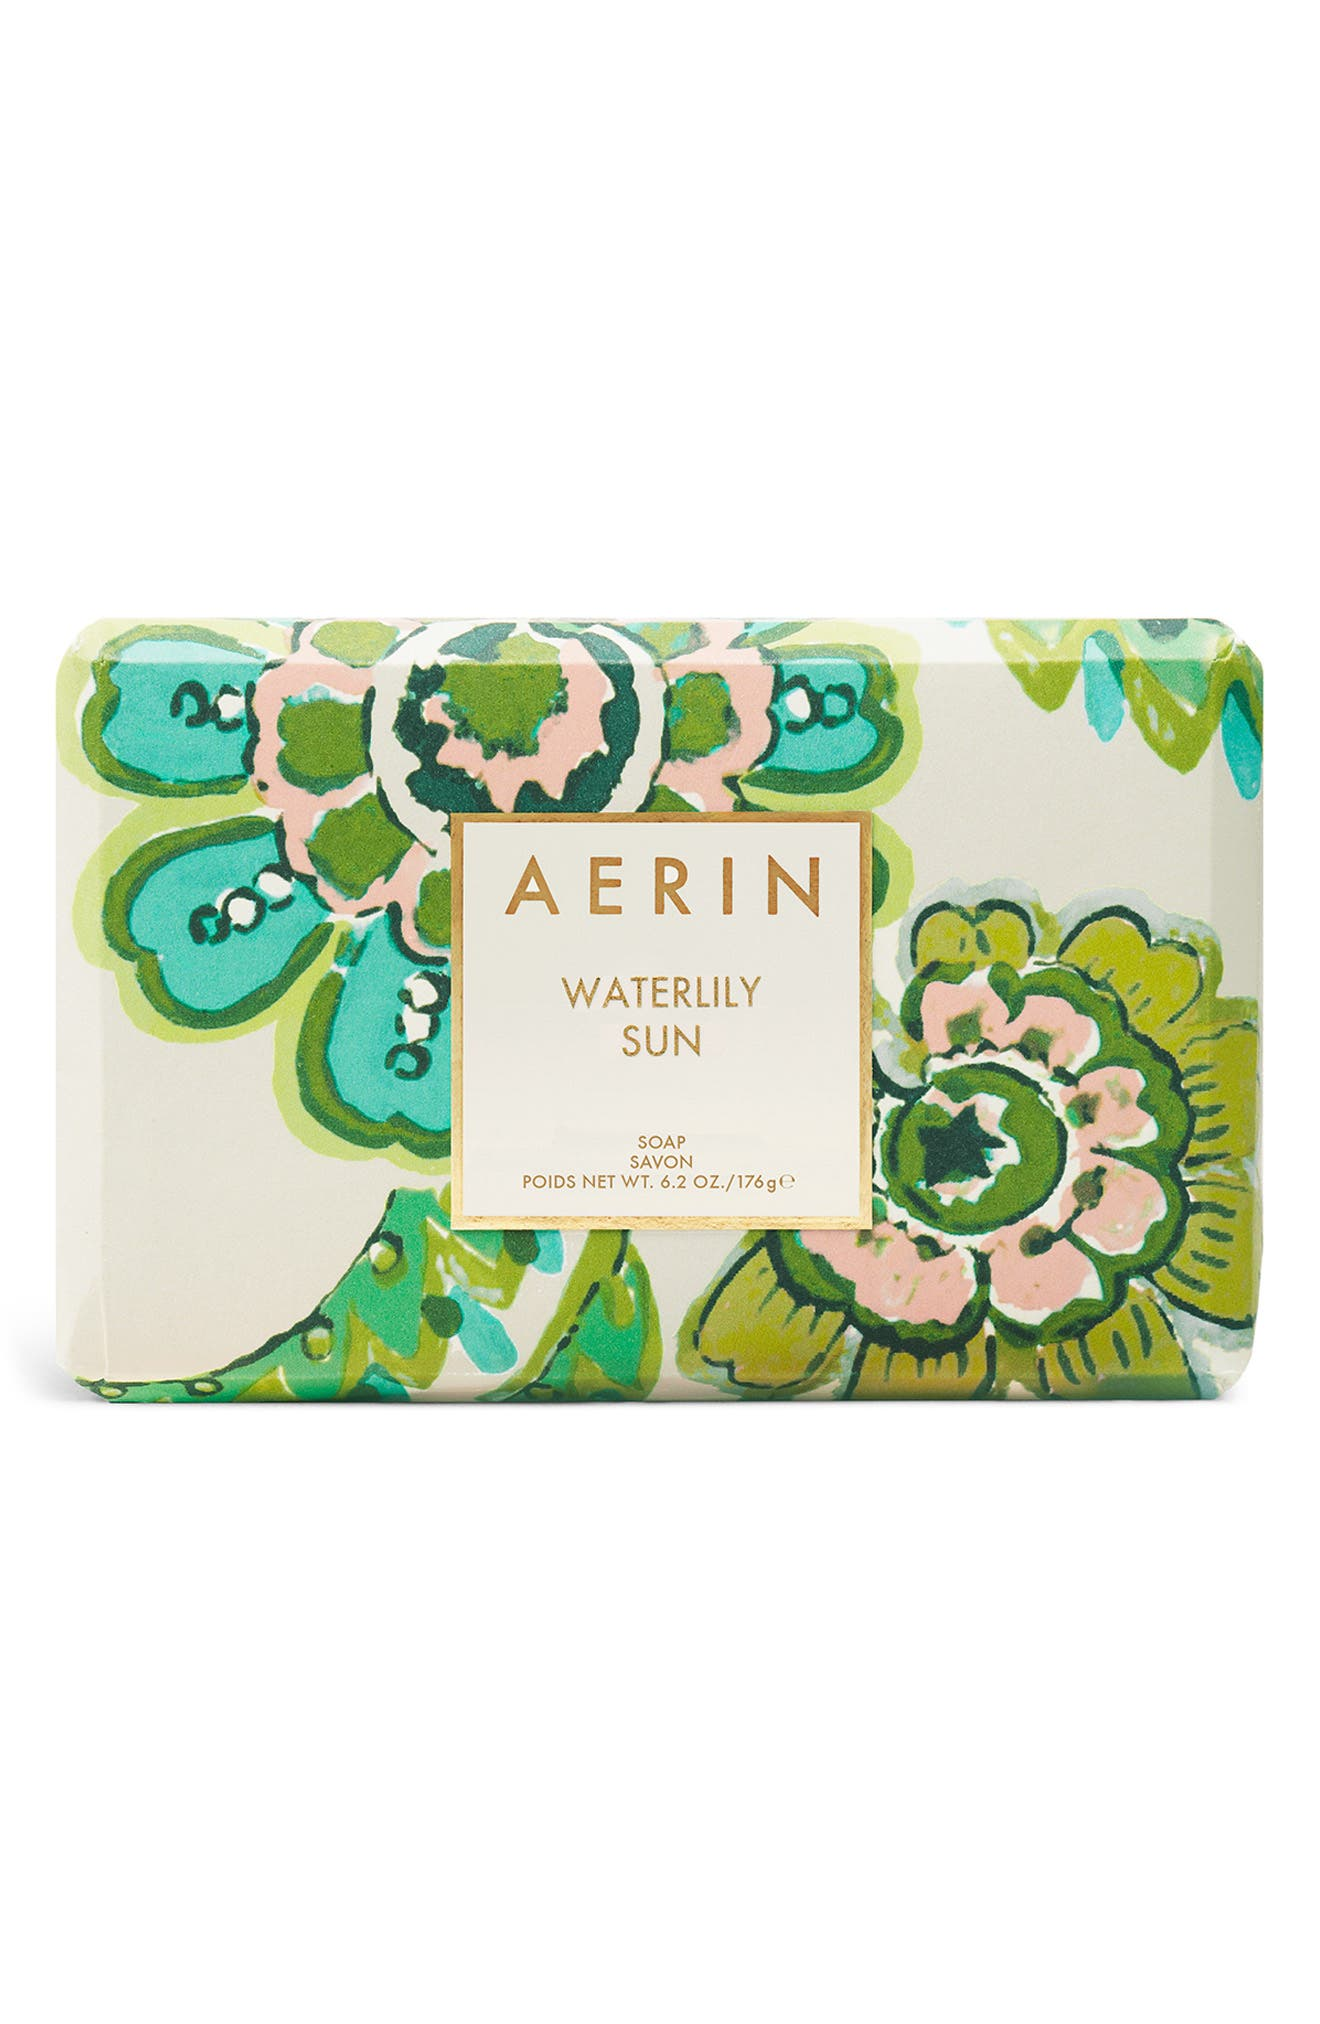 AERIN Beauty Waterlily Sun Soap